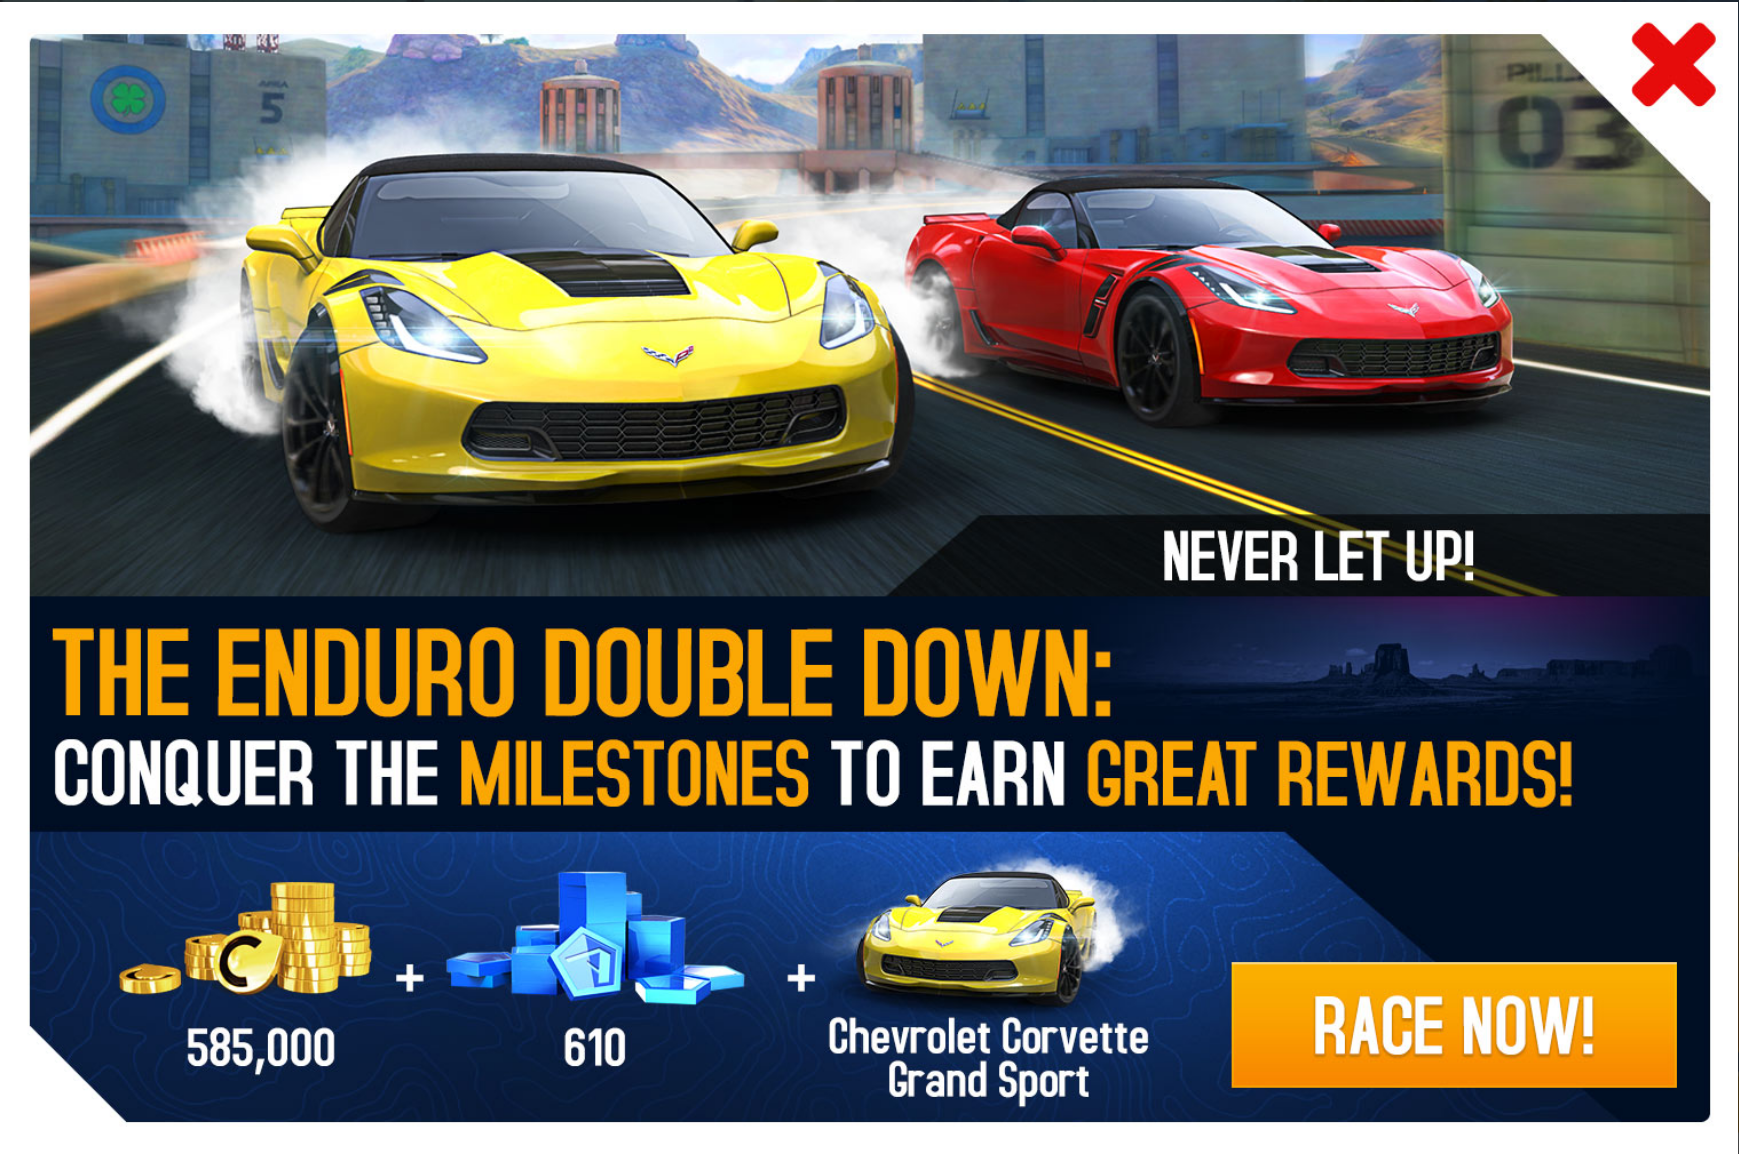 The Chevrolet Corvette Grand Sport Is The Eighth Enduro Double  Down Unlockable Car And Was Released As Part Of The Car Blueprints Update  In Asphalt 8: ...